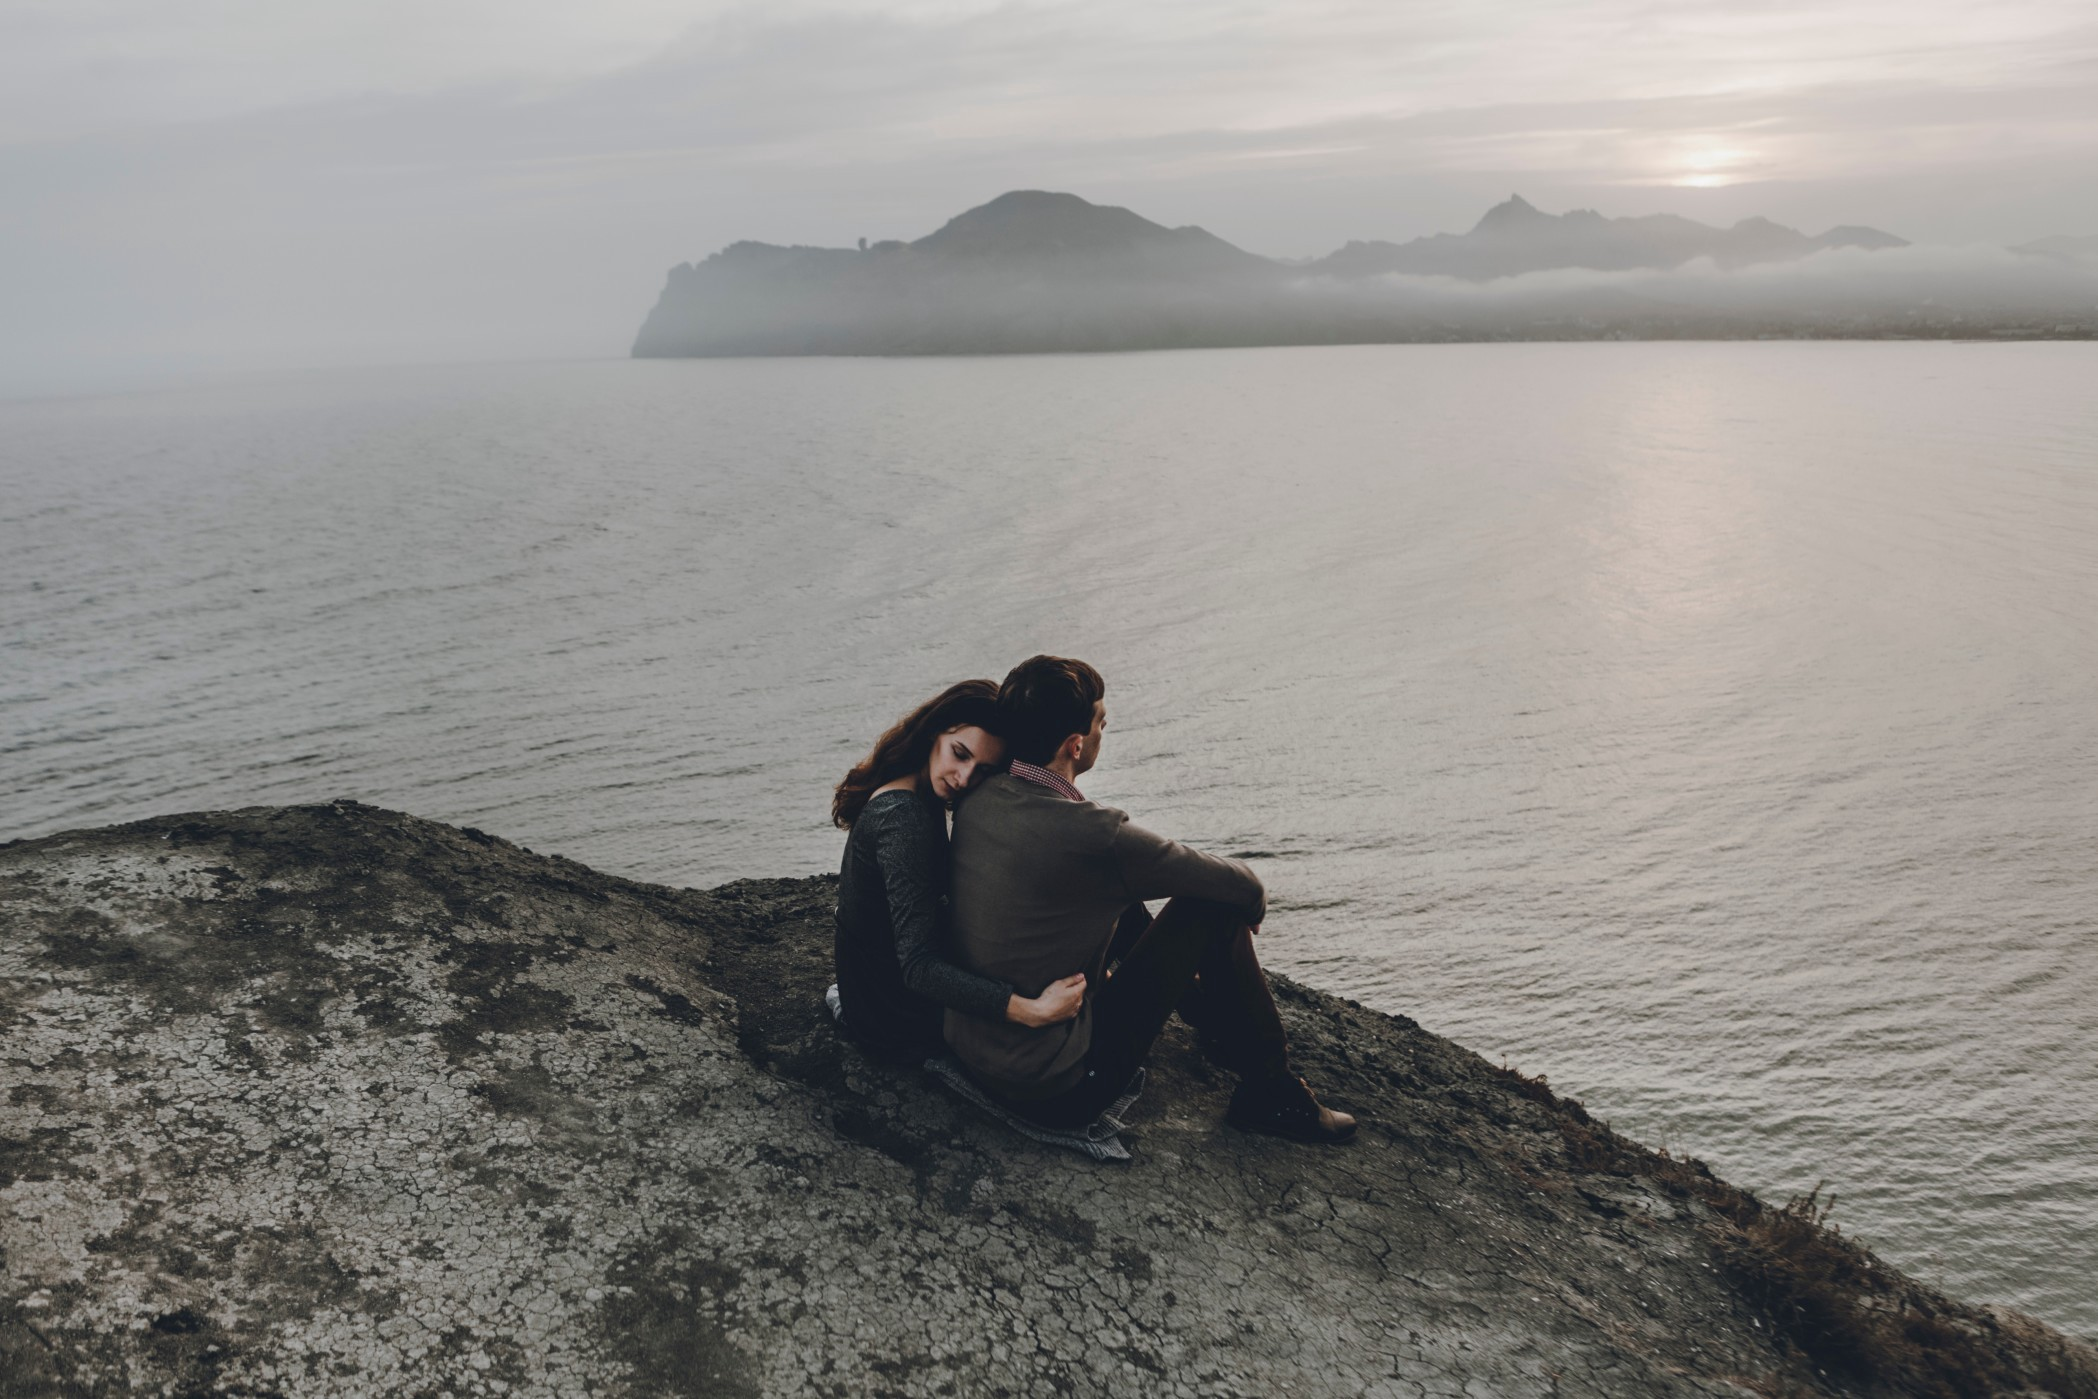 A couple embraces on a cliff overlooking a grey and cloudy sea.